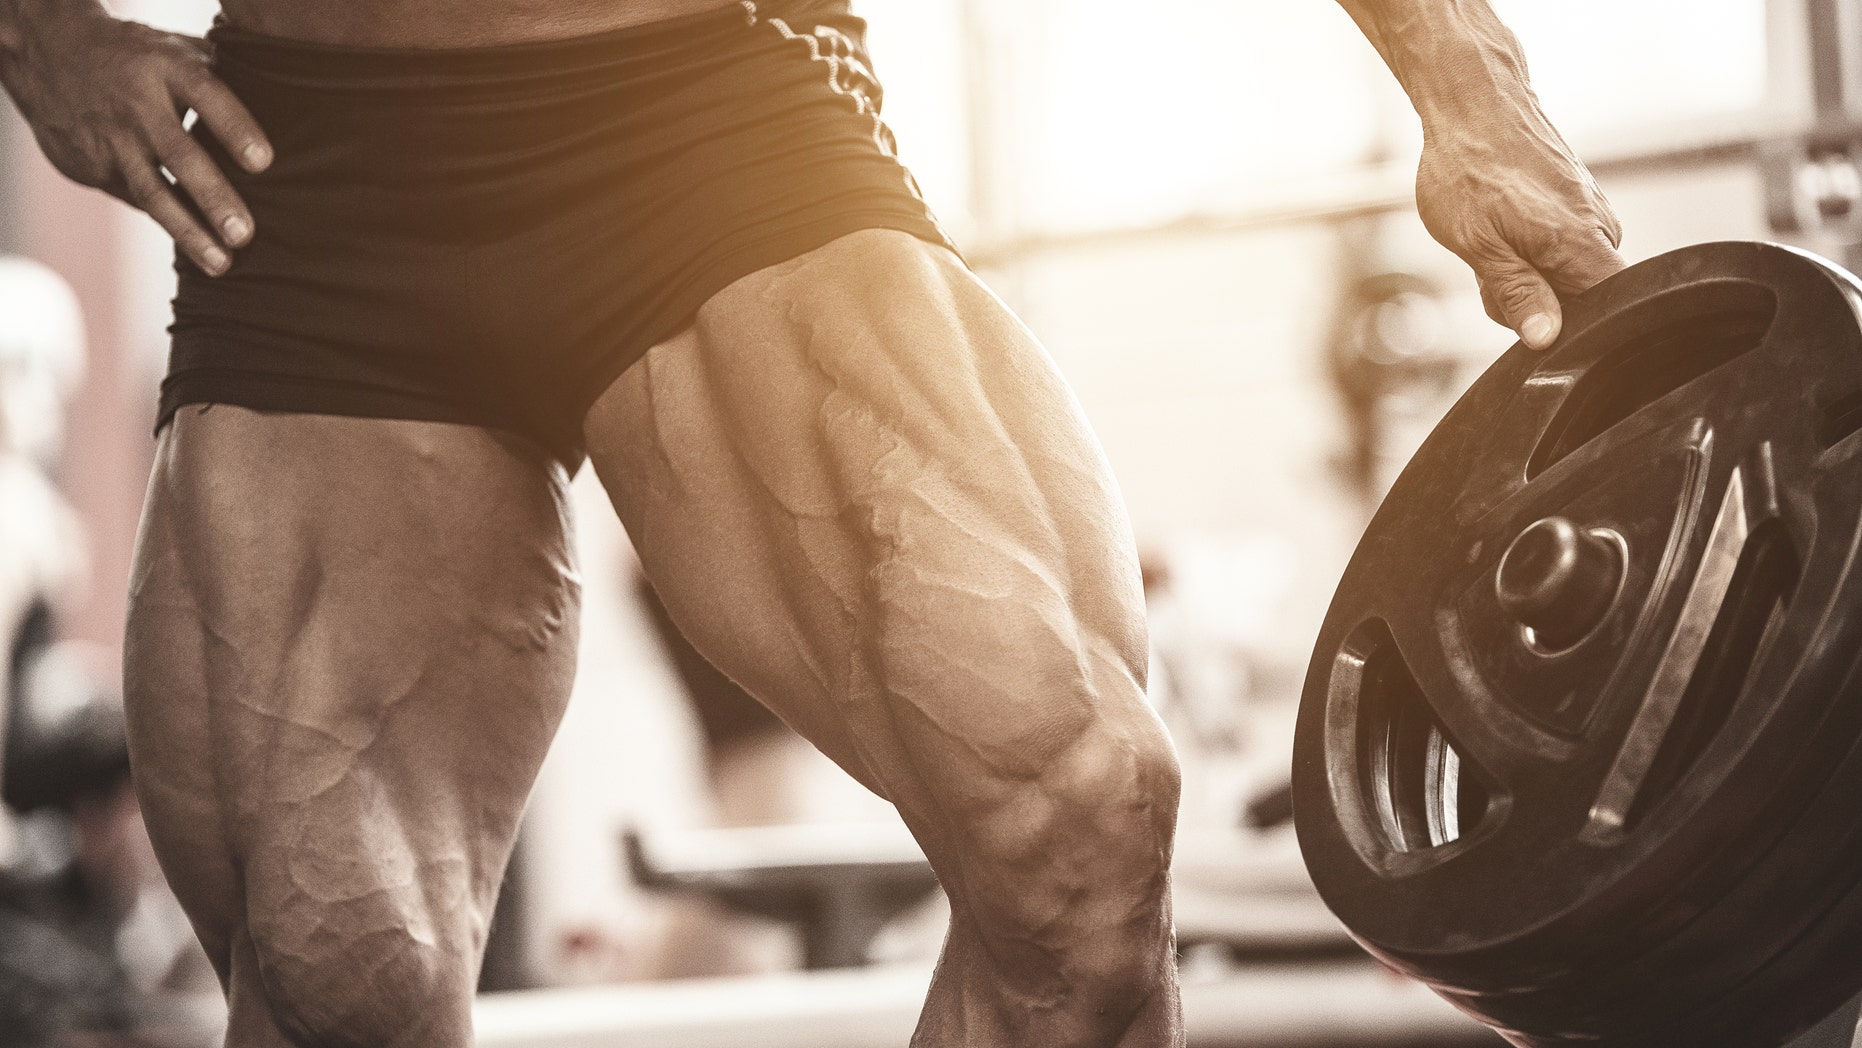 If a bodybuilder or any other weight-training buff gets too preoccupied with the game, it can lead to a psychiatric disorder called muscle dysmorphia.